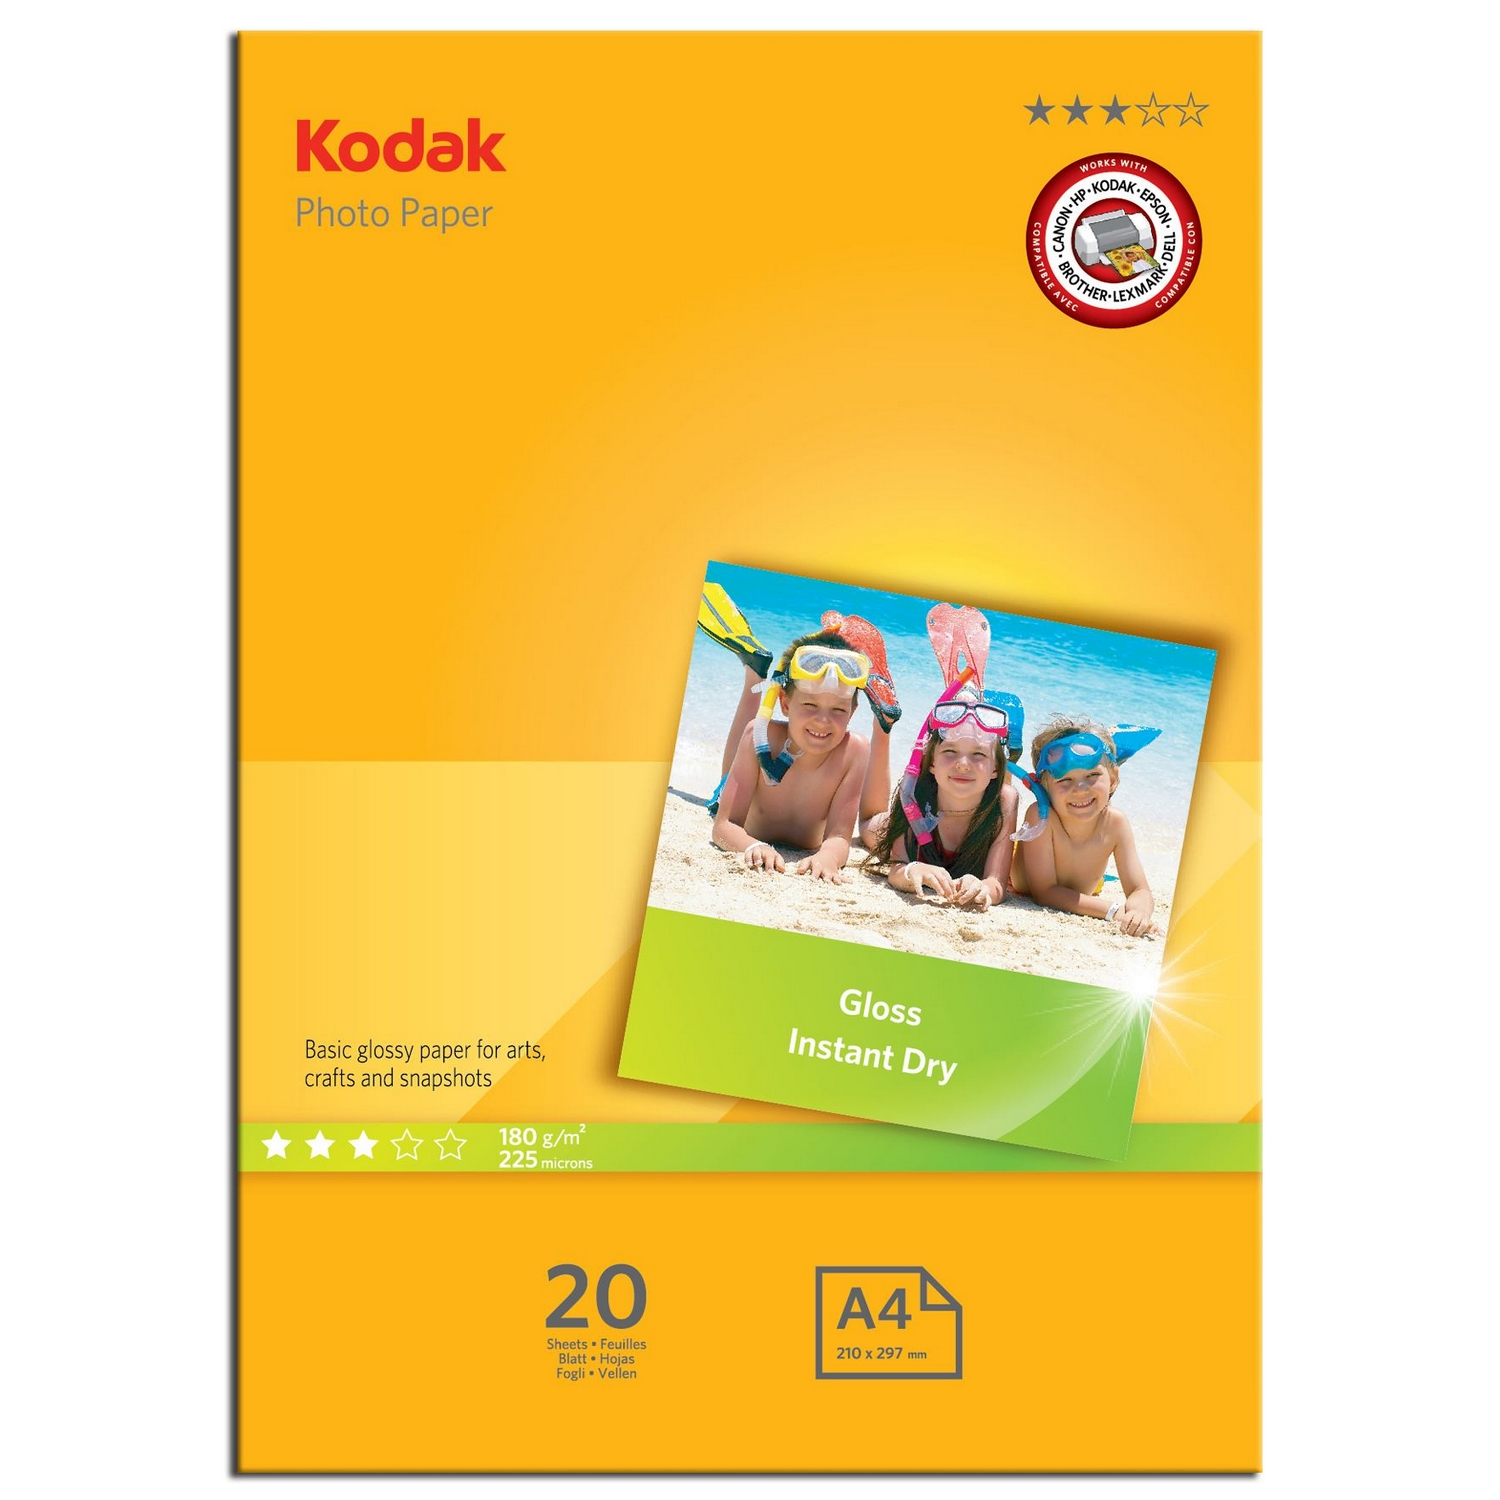 Original Kodak 180gsm A4 Photo Paper - 20 Sheets (5740512)